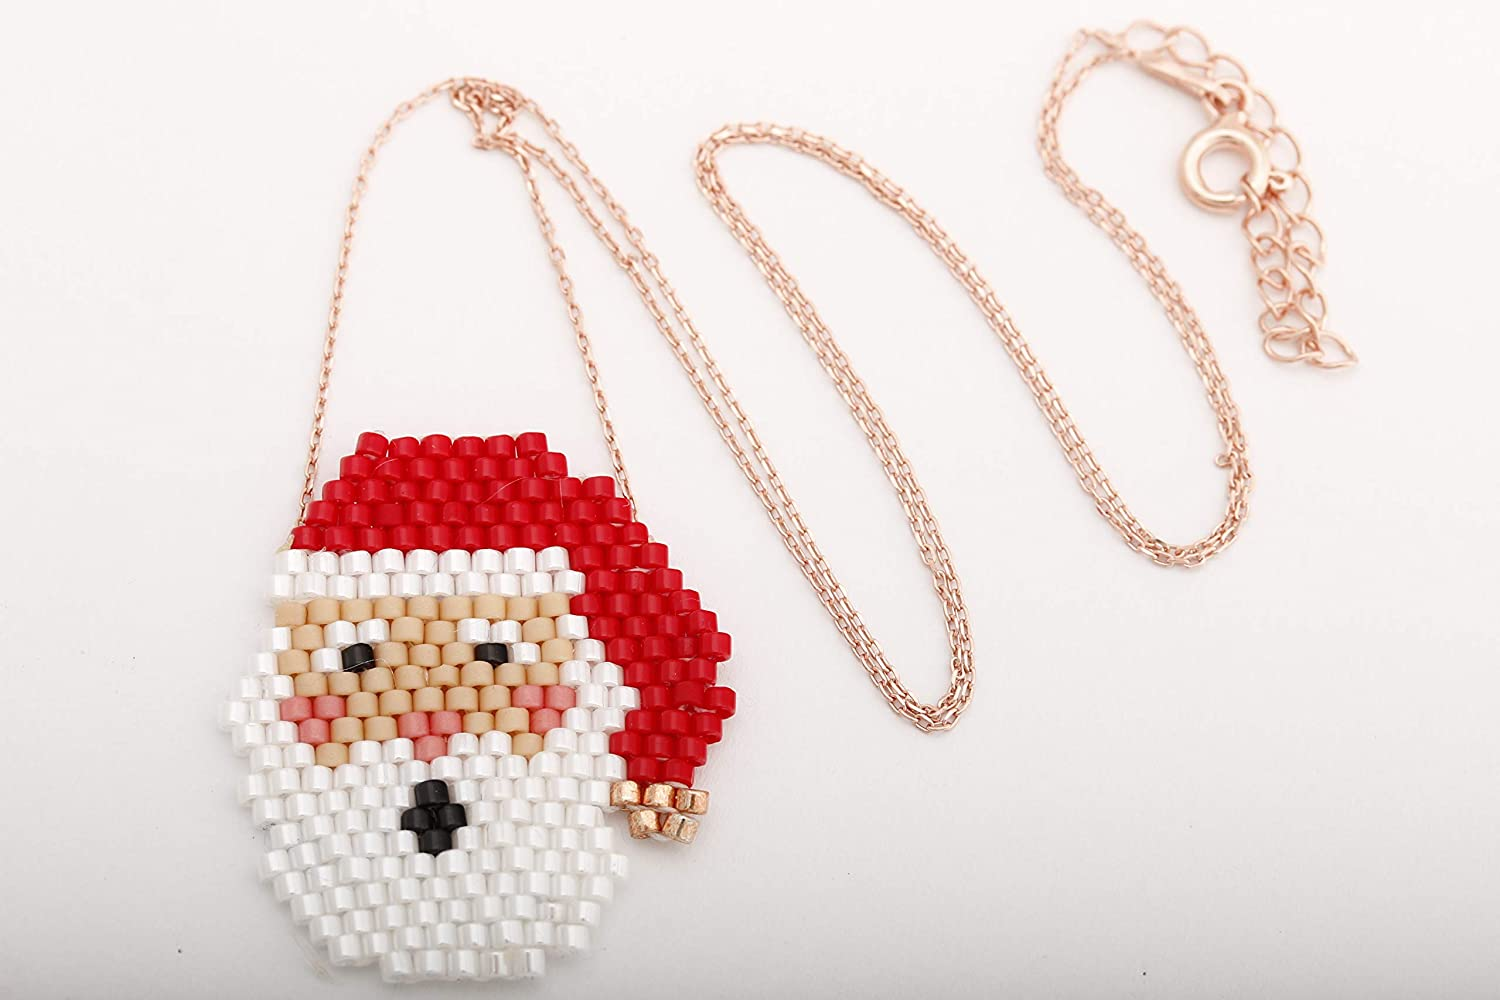 Turkish Handmade Jewelry Beaded Santa Claus 925 Sterling Silver Rose Gold Pendant Necklace Christmas Gift